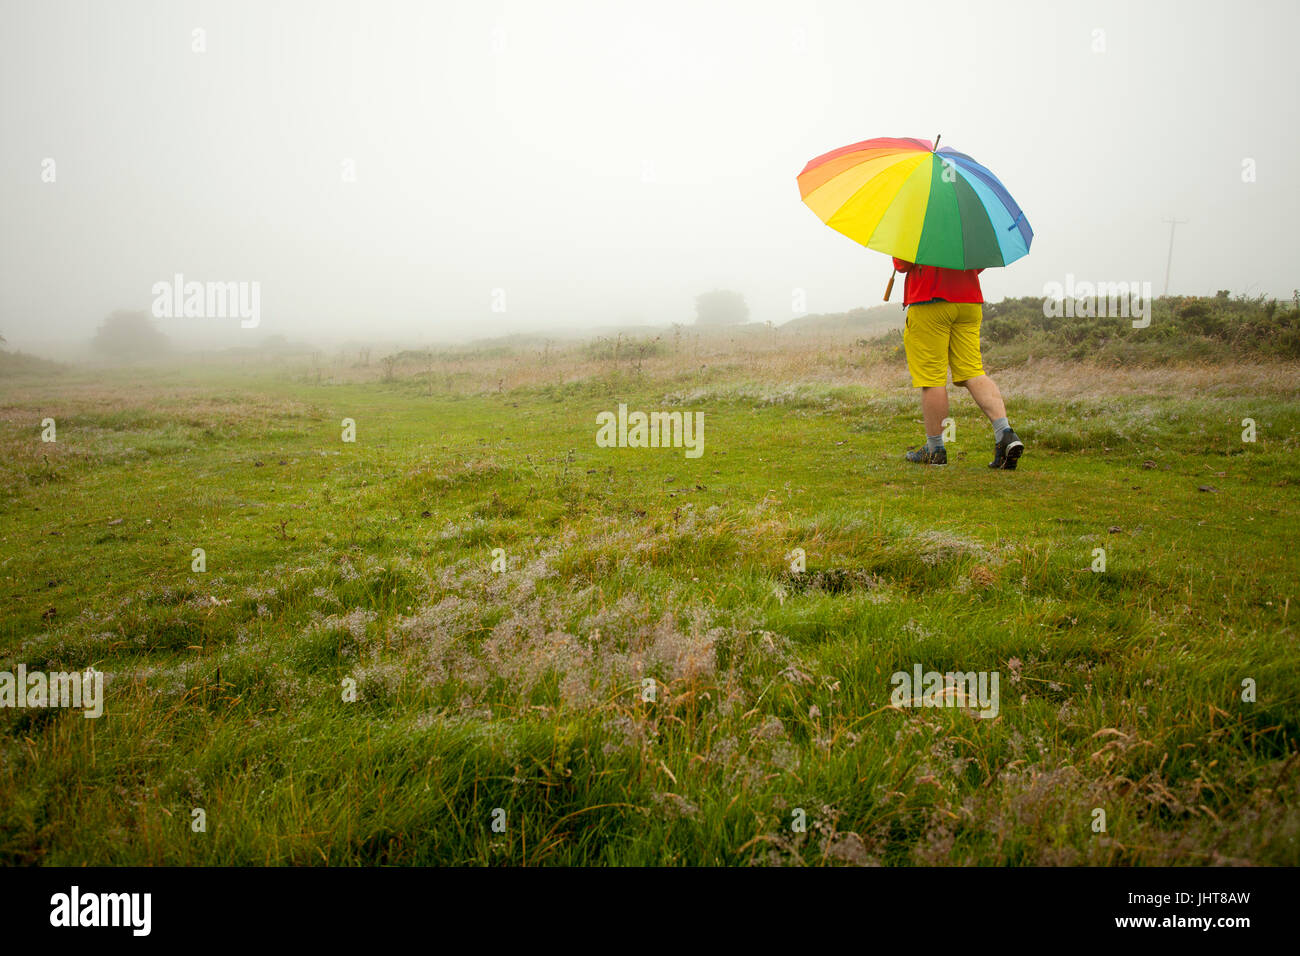 A person walking through a rural field holding a multicoloured umbrella for protection against the rain on Halkyn - Stock Image